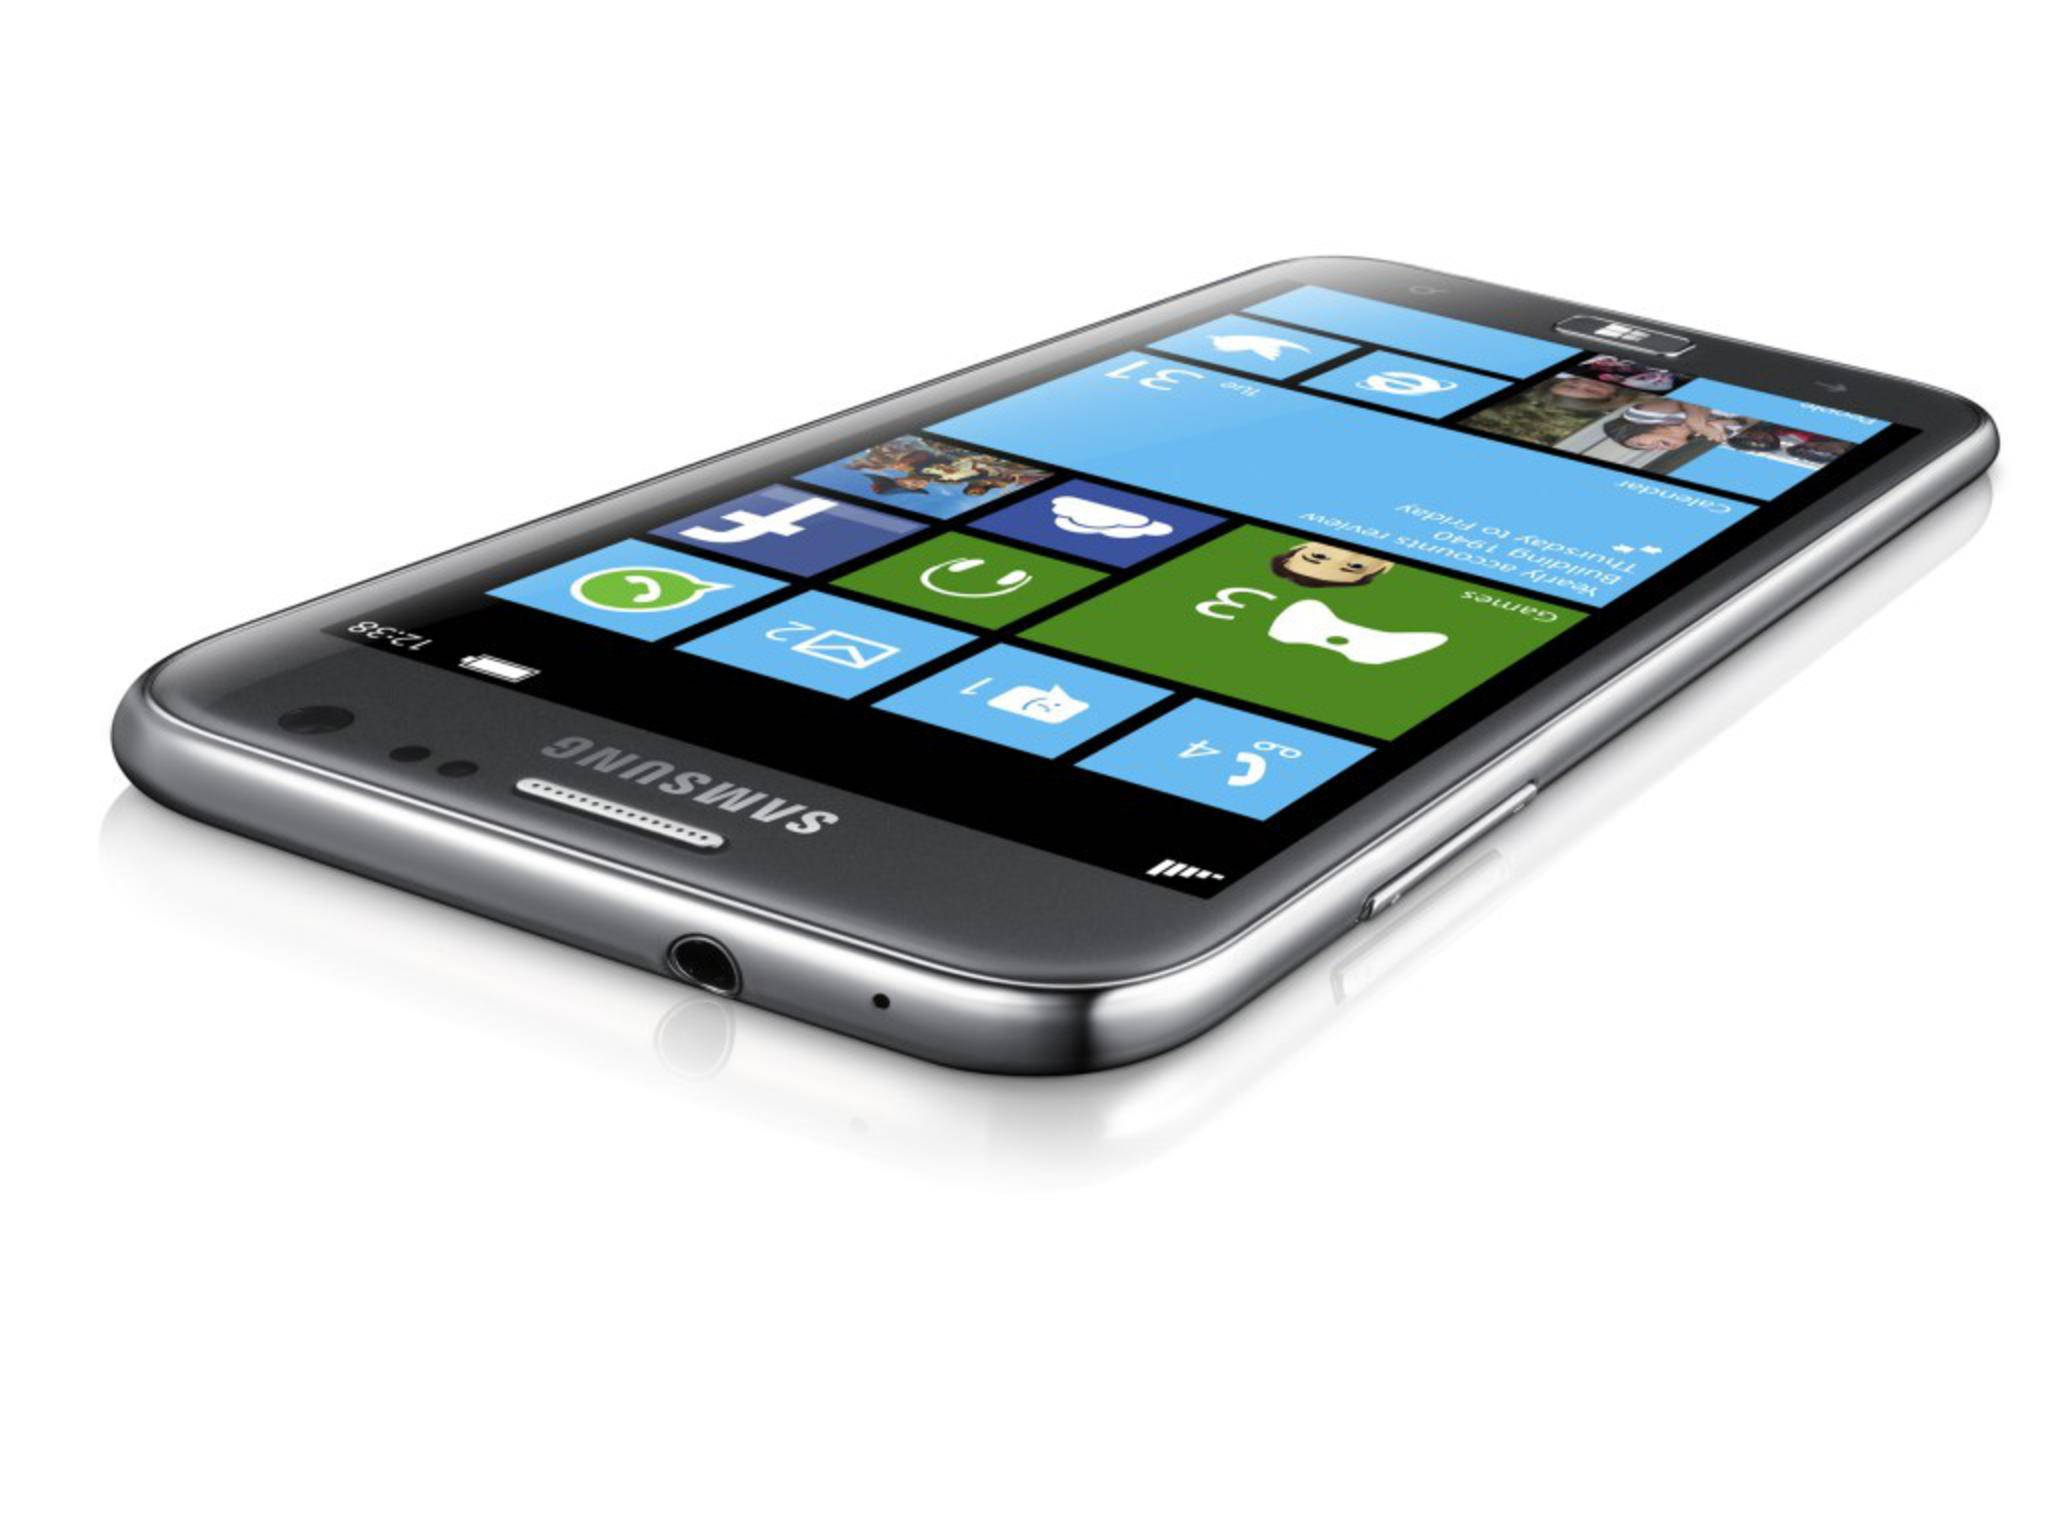 Das Ativ S war Samsungs erstes Smartphone mit Windows Phone 8.